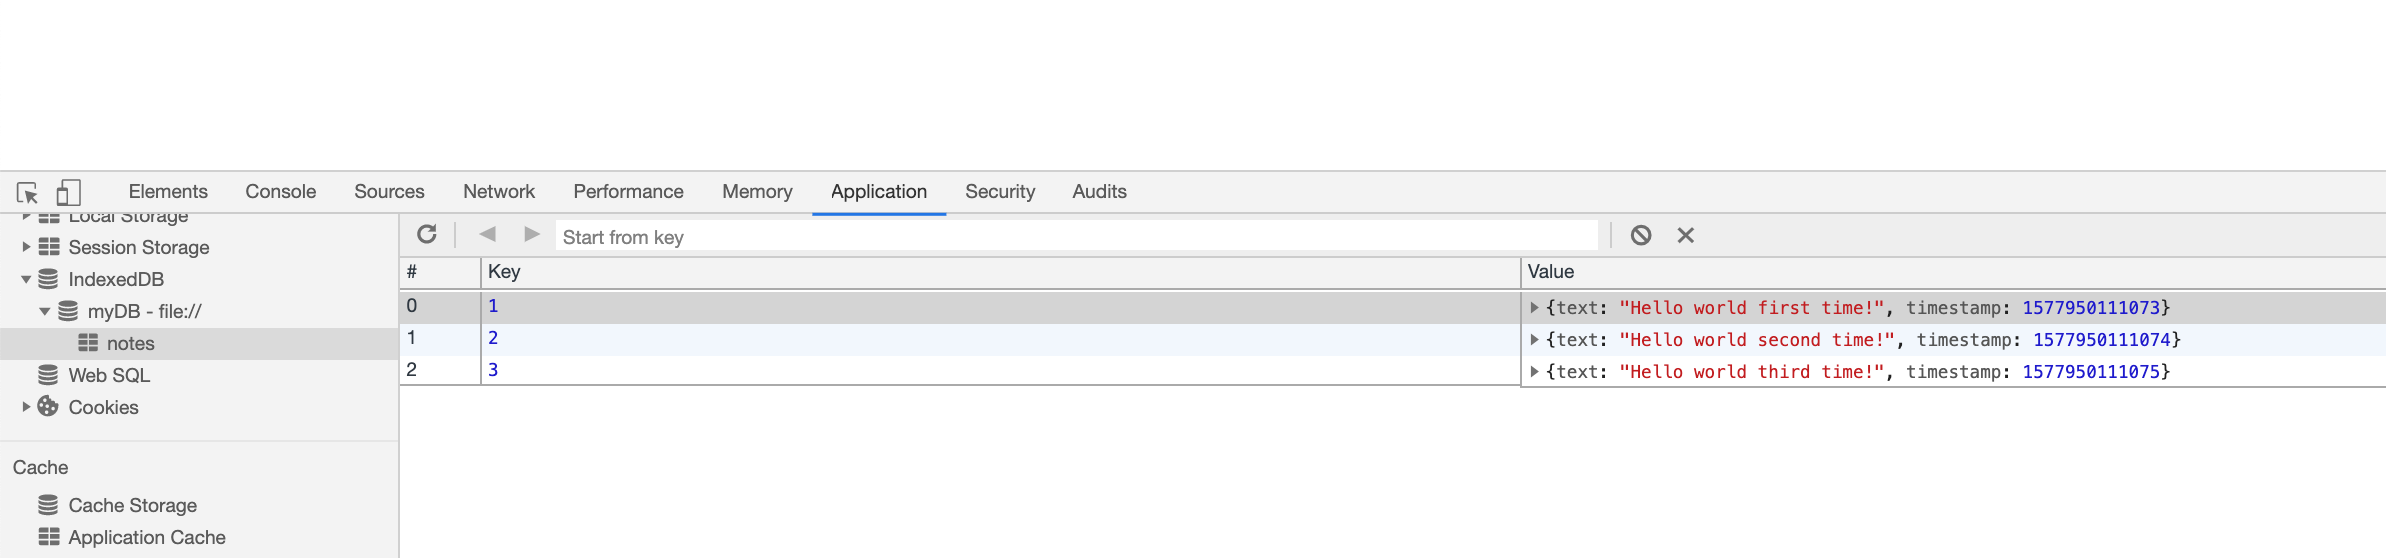 Screenshot of our IndexedDB panel with our objects stored